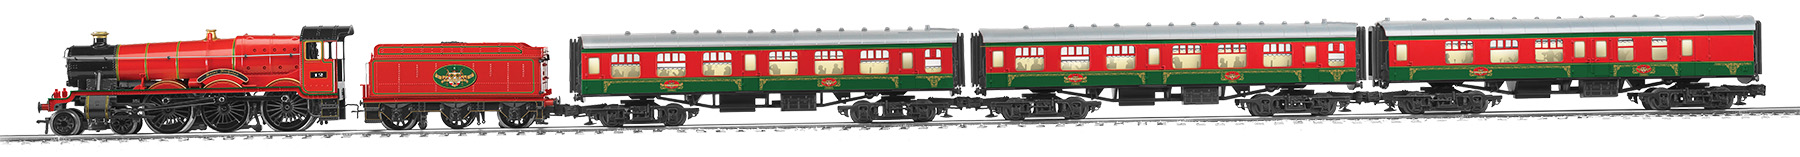 new product spotlight victorian christmas lionchief set lionel trains. Black Bedroom Furniture Sets. Home Design Ideas